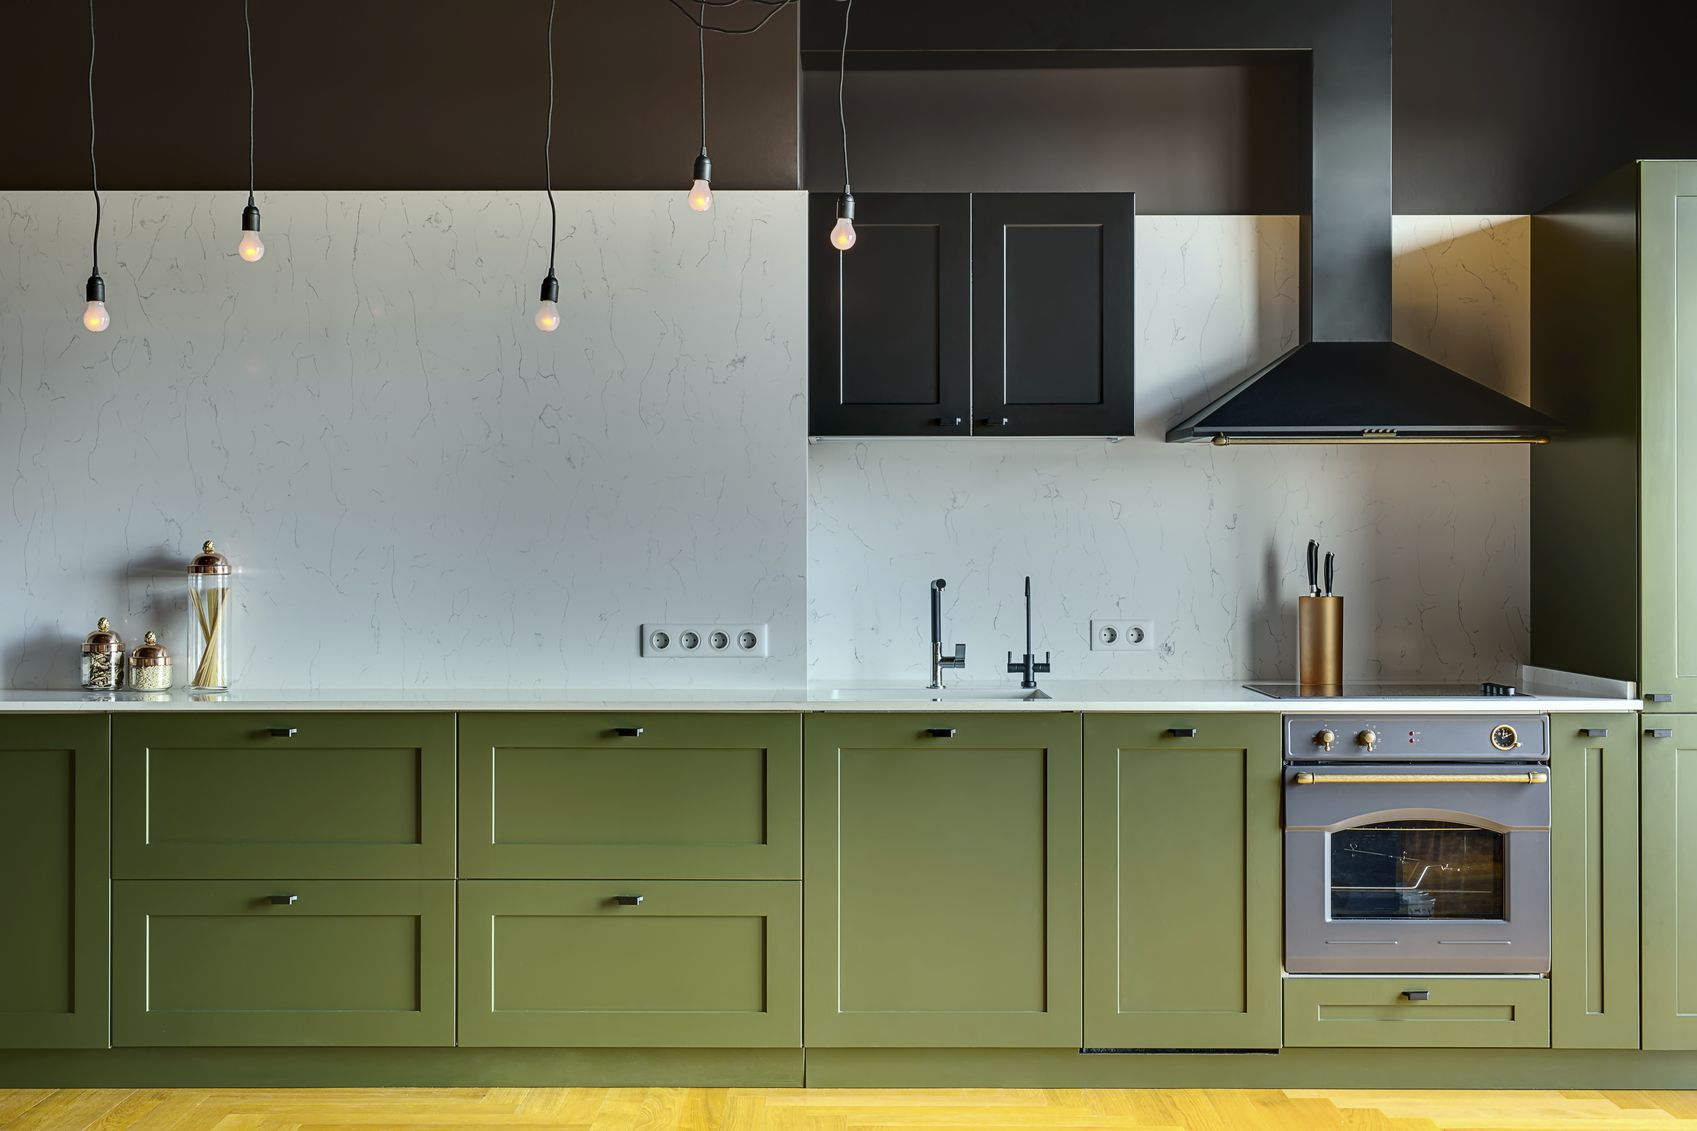 Kitchen in a modern style with a light tabletop with sink, cooker ...